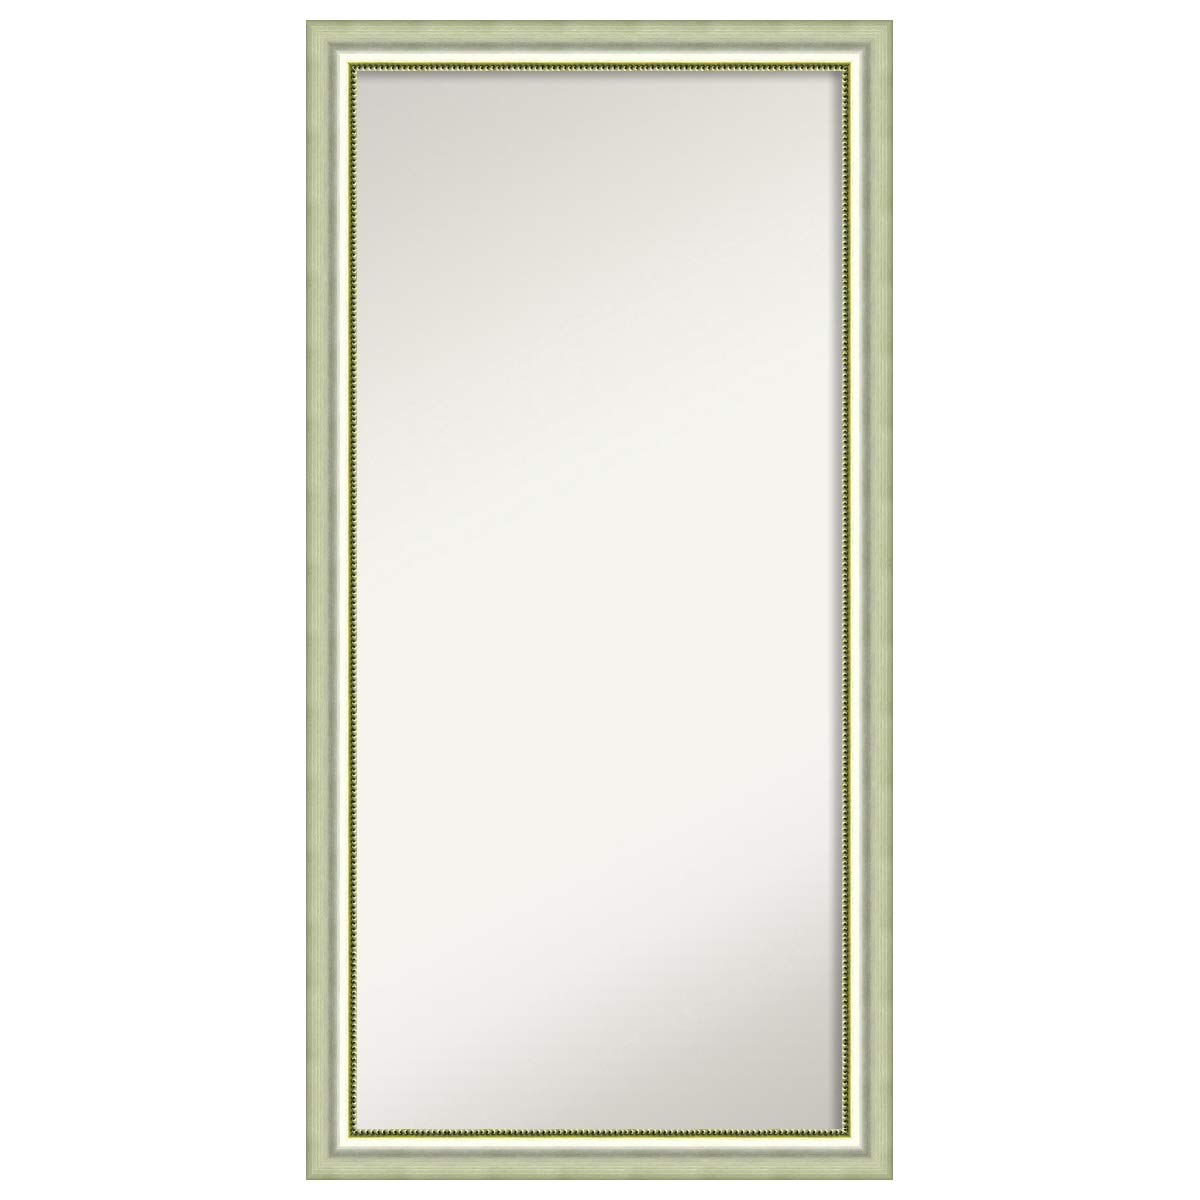 Trendy Traditional Square Glass Wall Mirrors Regarding Amazon: Amanti Art Framed Vegas Silver Solid Wood Wall Mirrors (Gallery 11 of 20)